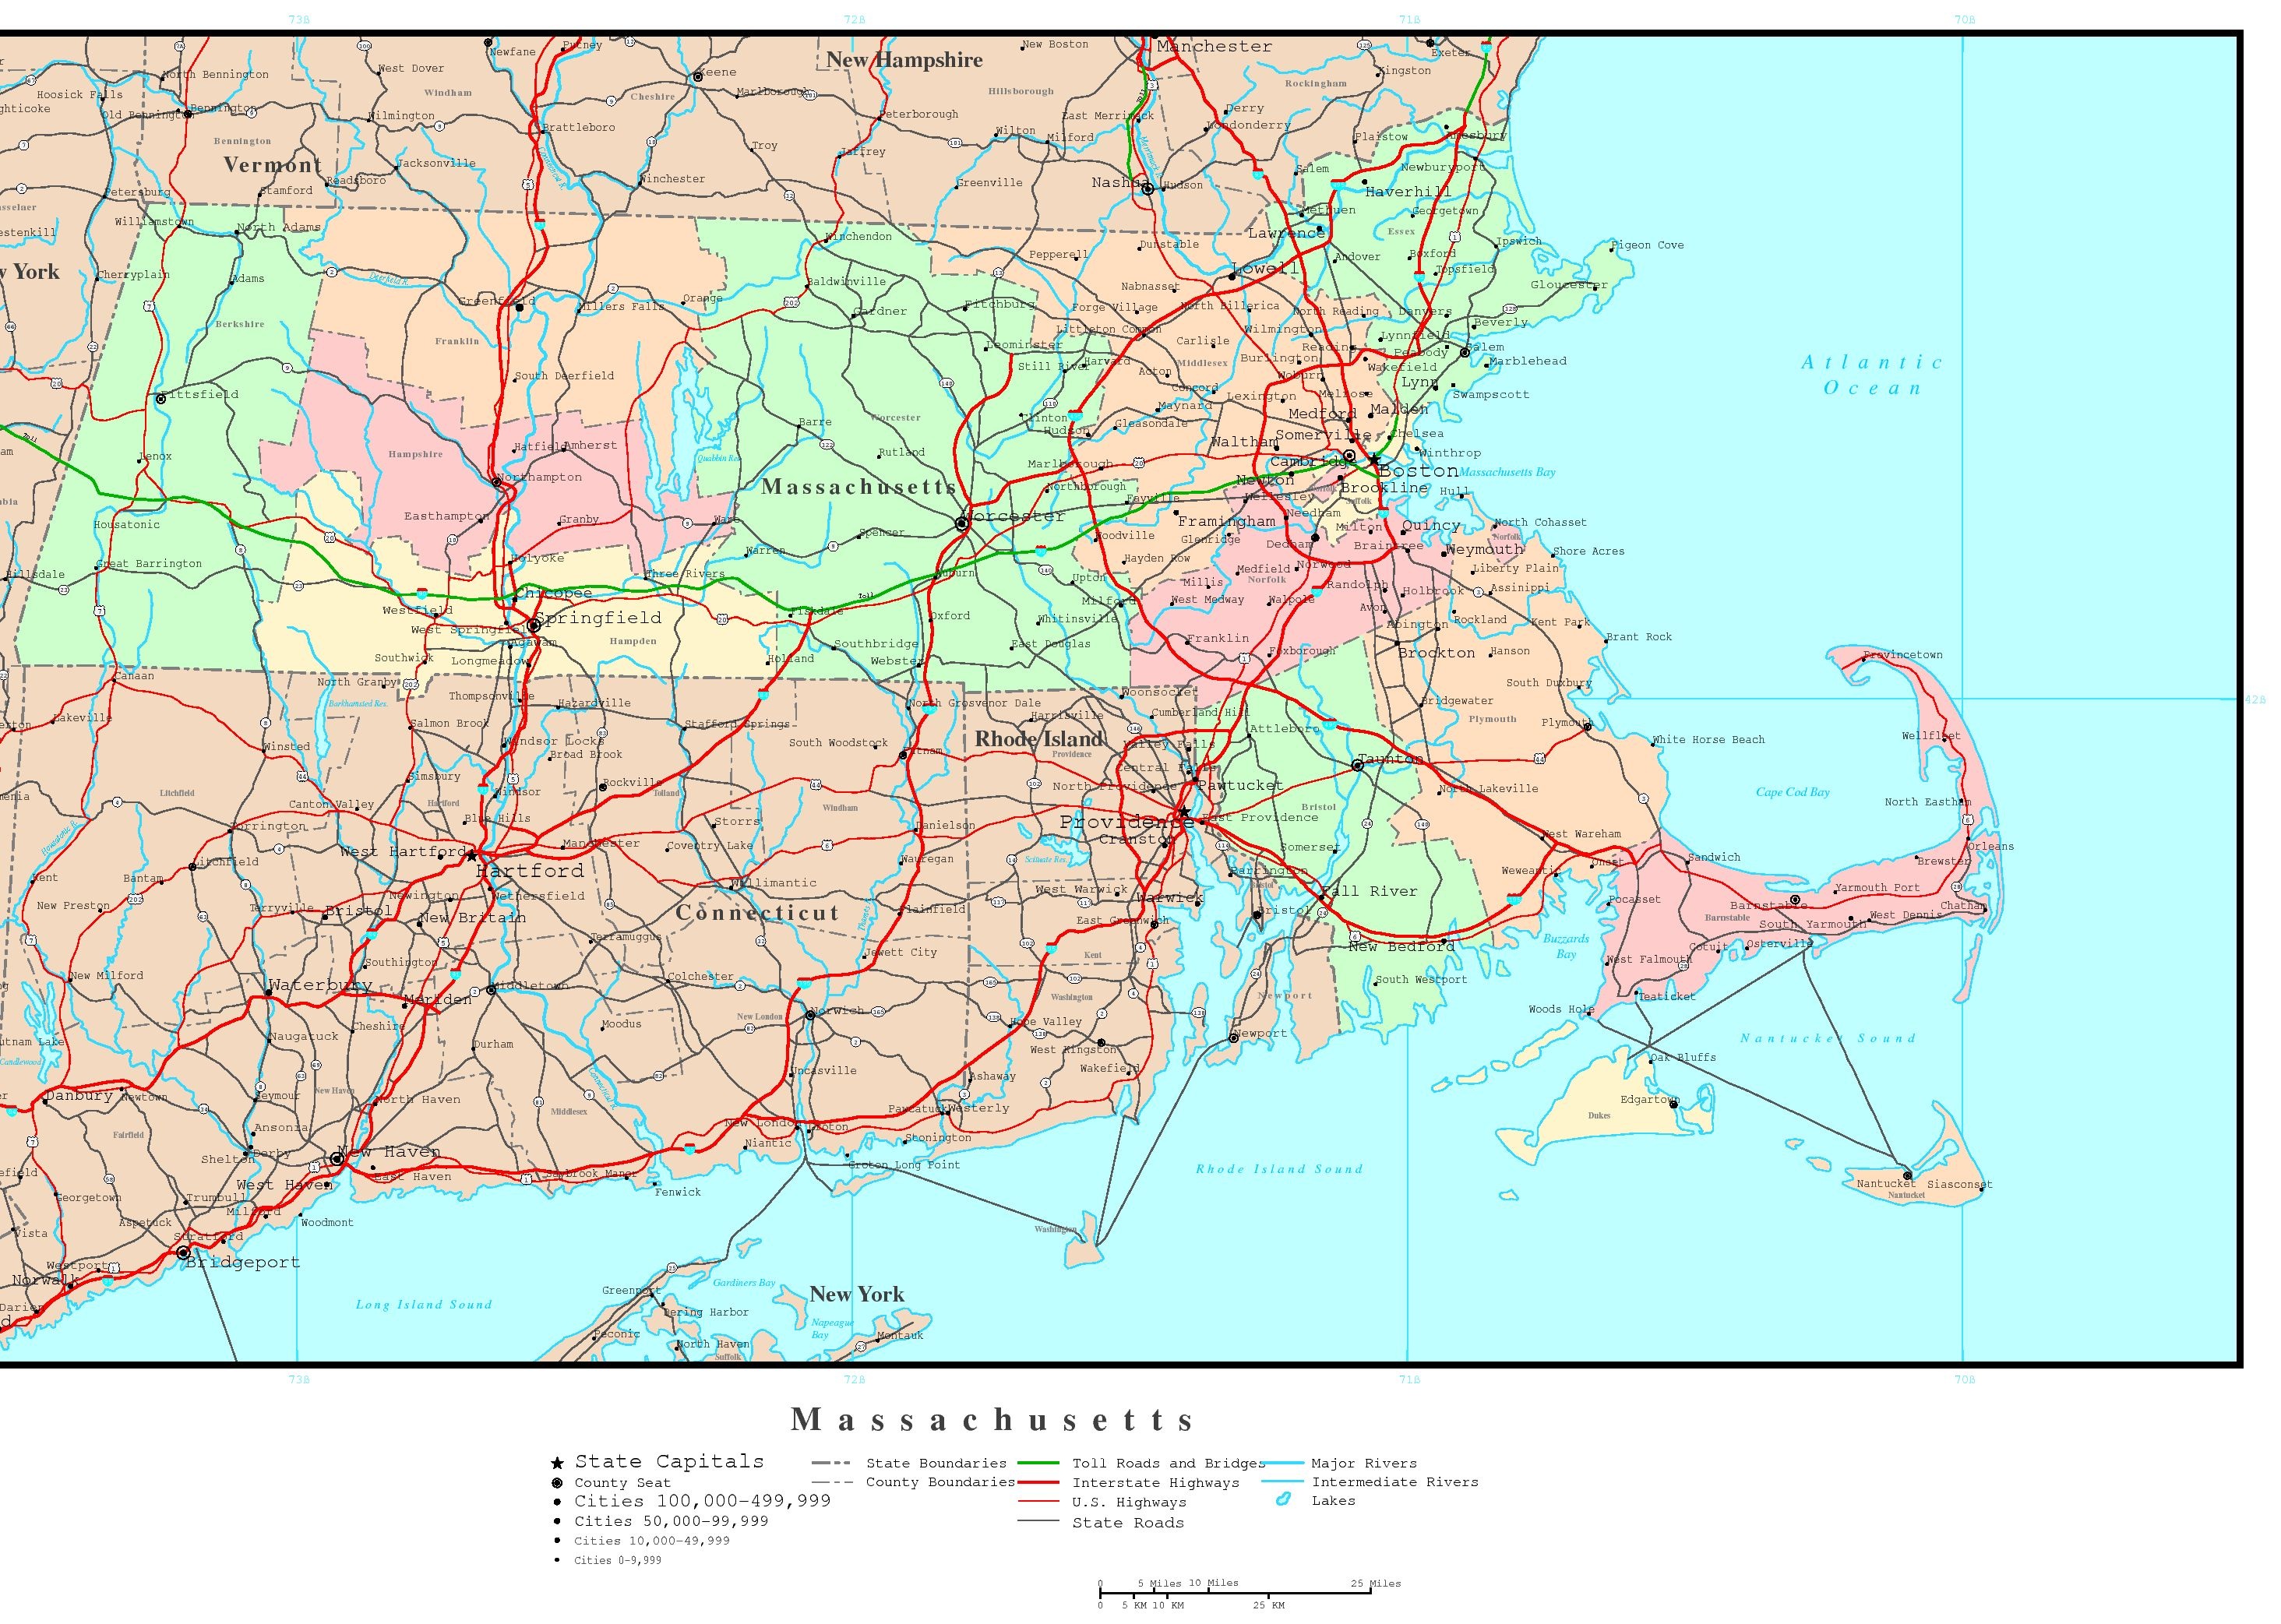 Massachusetts Labeled Map - Massachusetts physical map